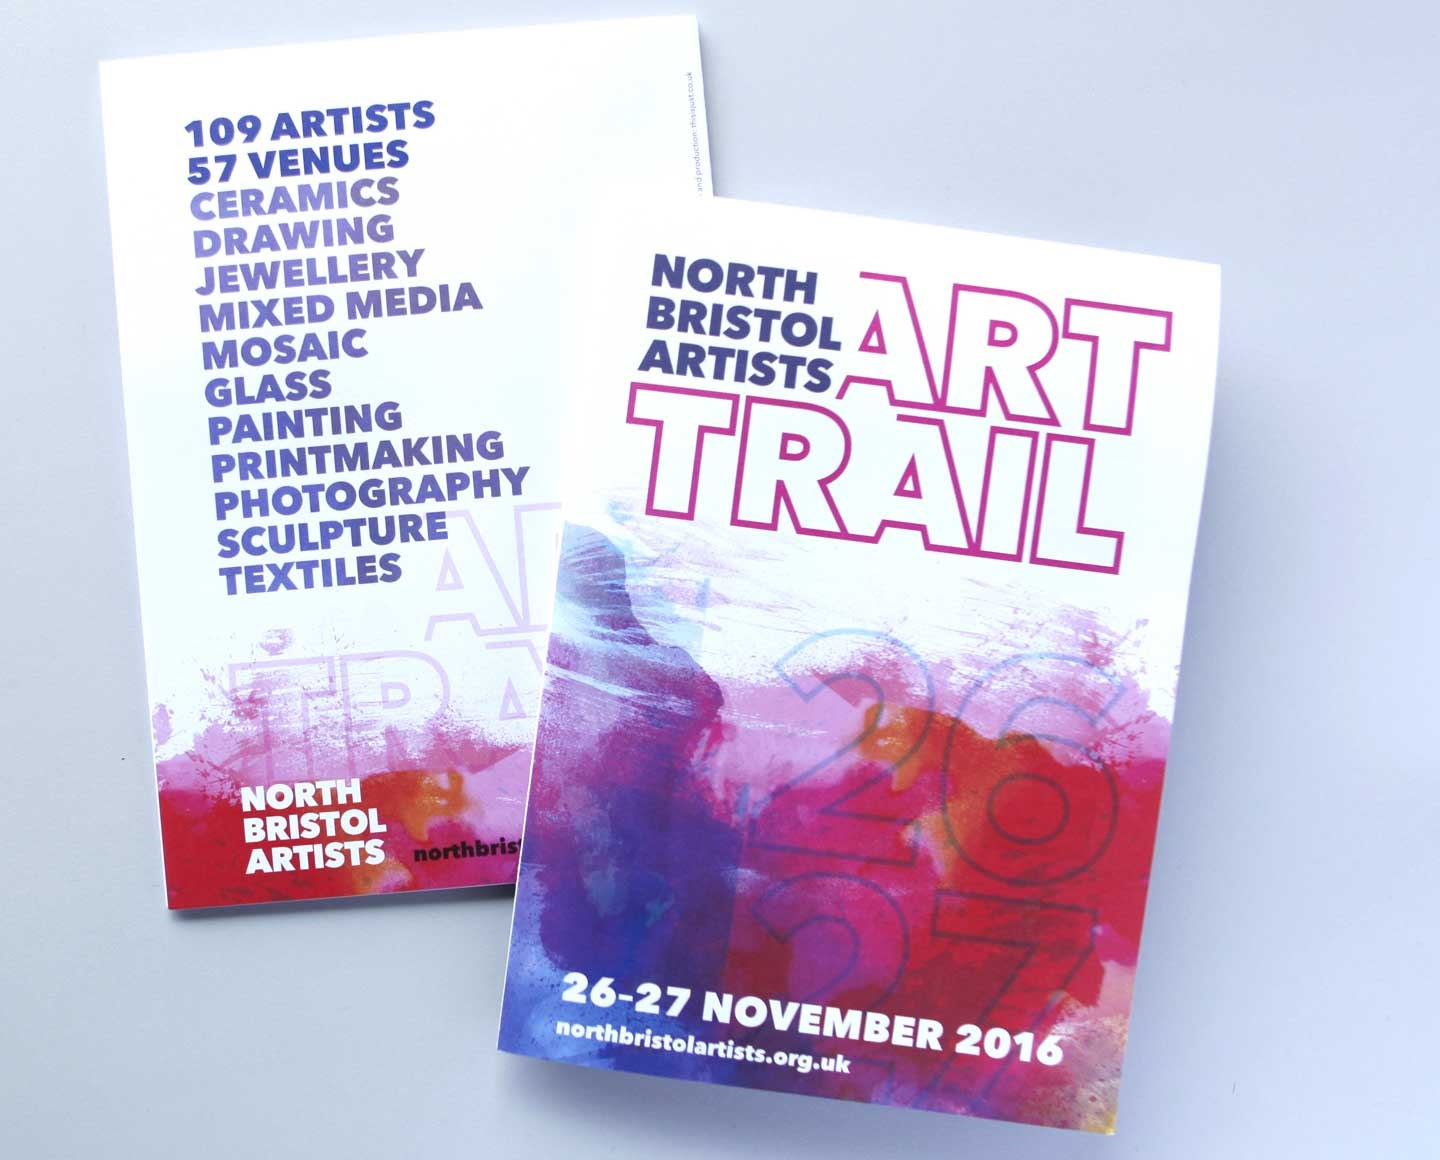 North Bristol Artists